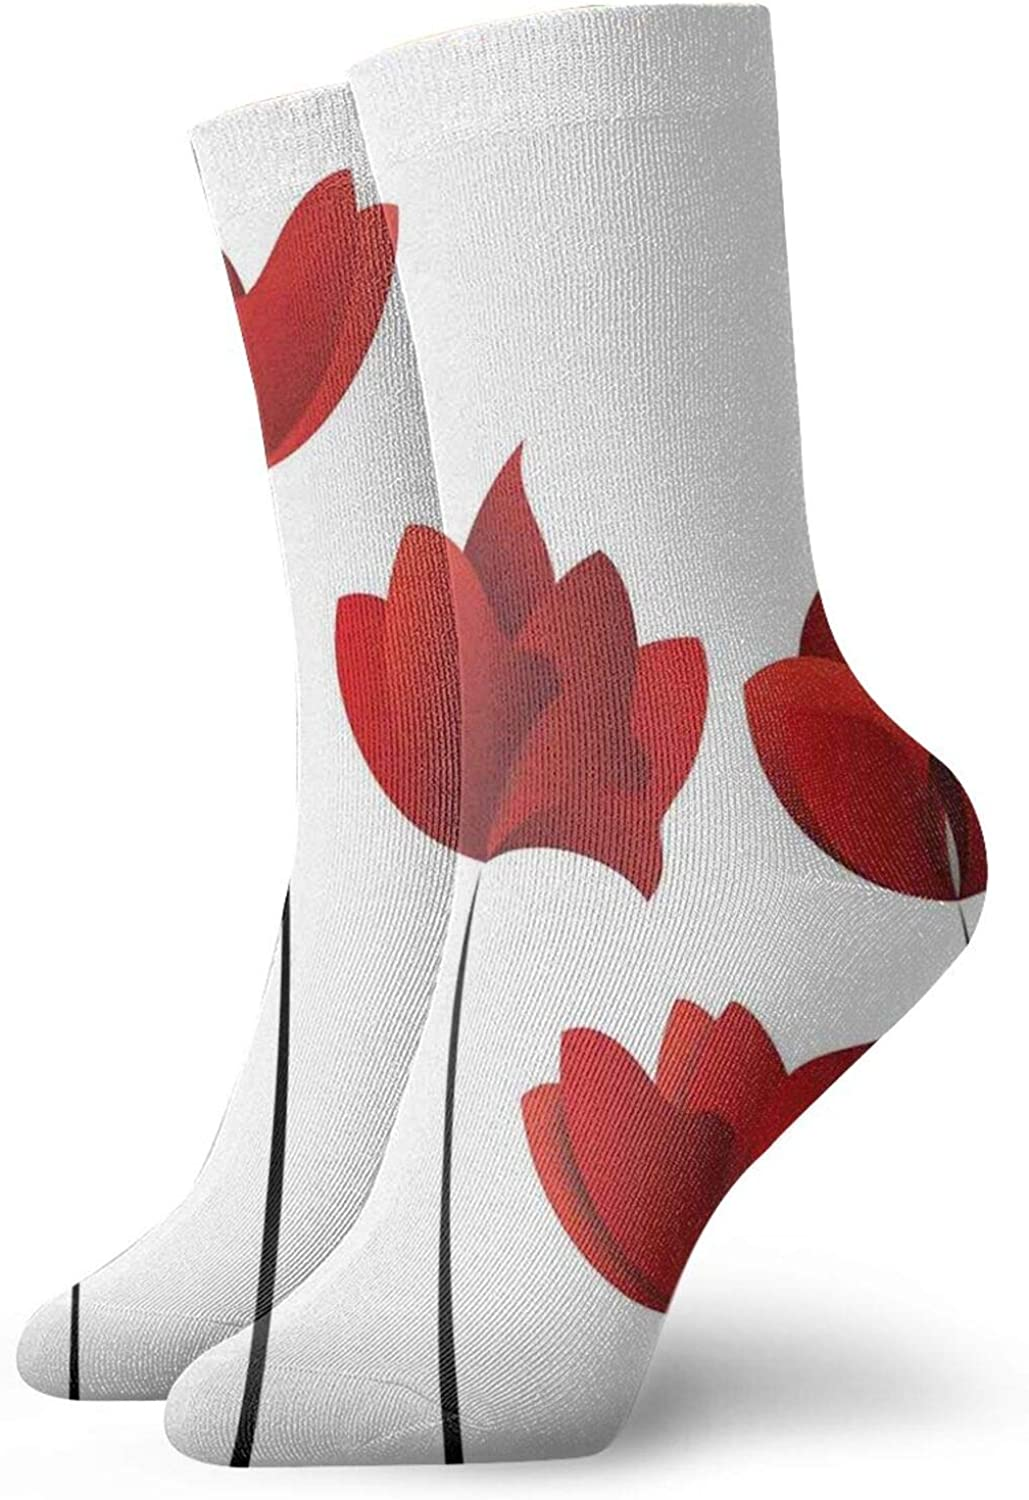 Silhouette Of A Couple Sitting In Front Of Heart Shaped Moon Night Out Athletic Socks For Men / Women,30CM